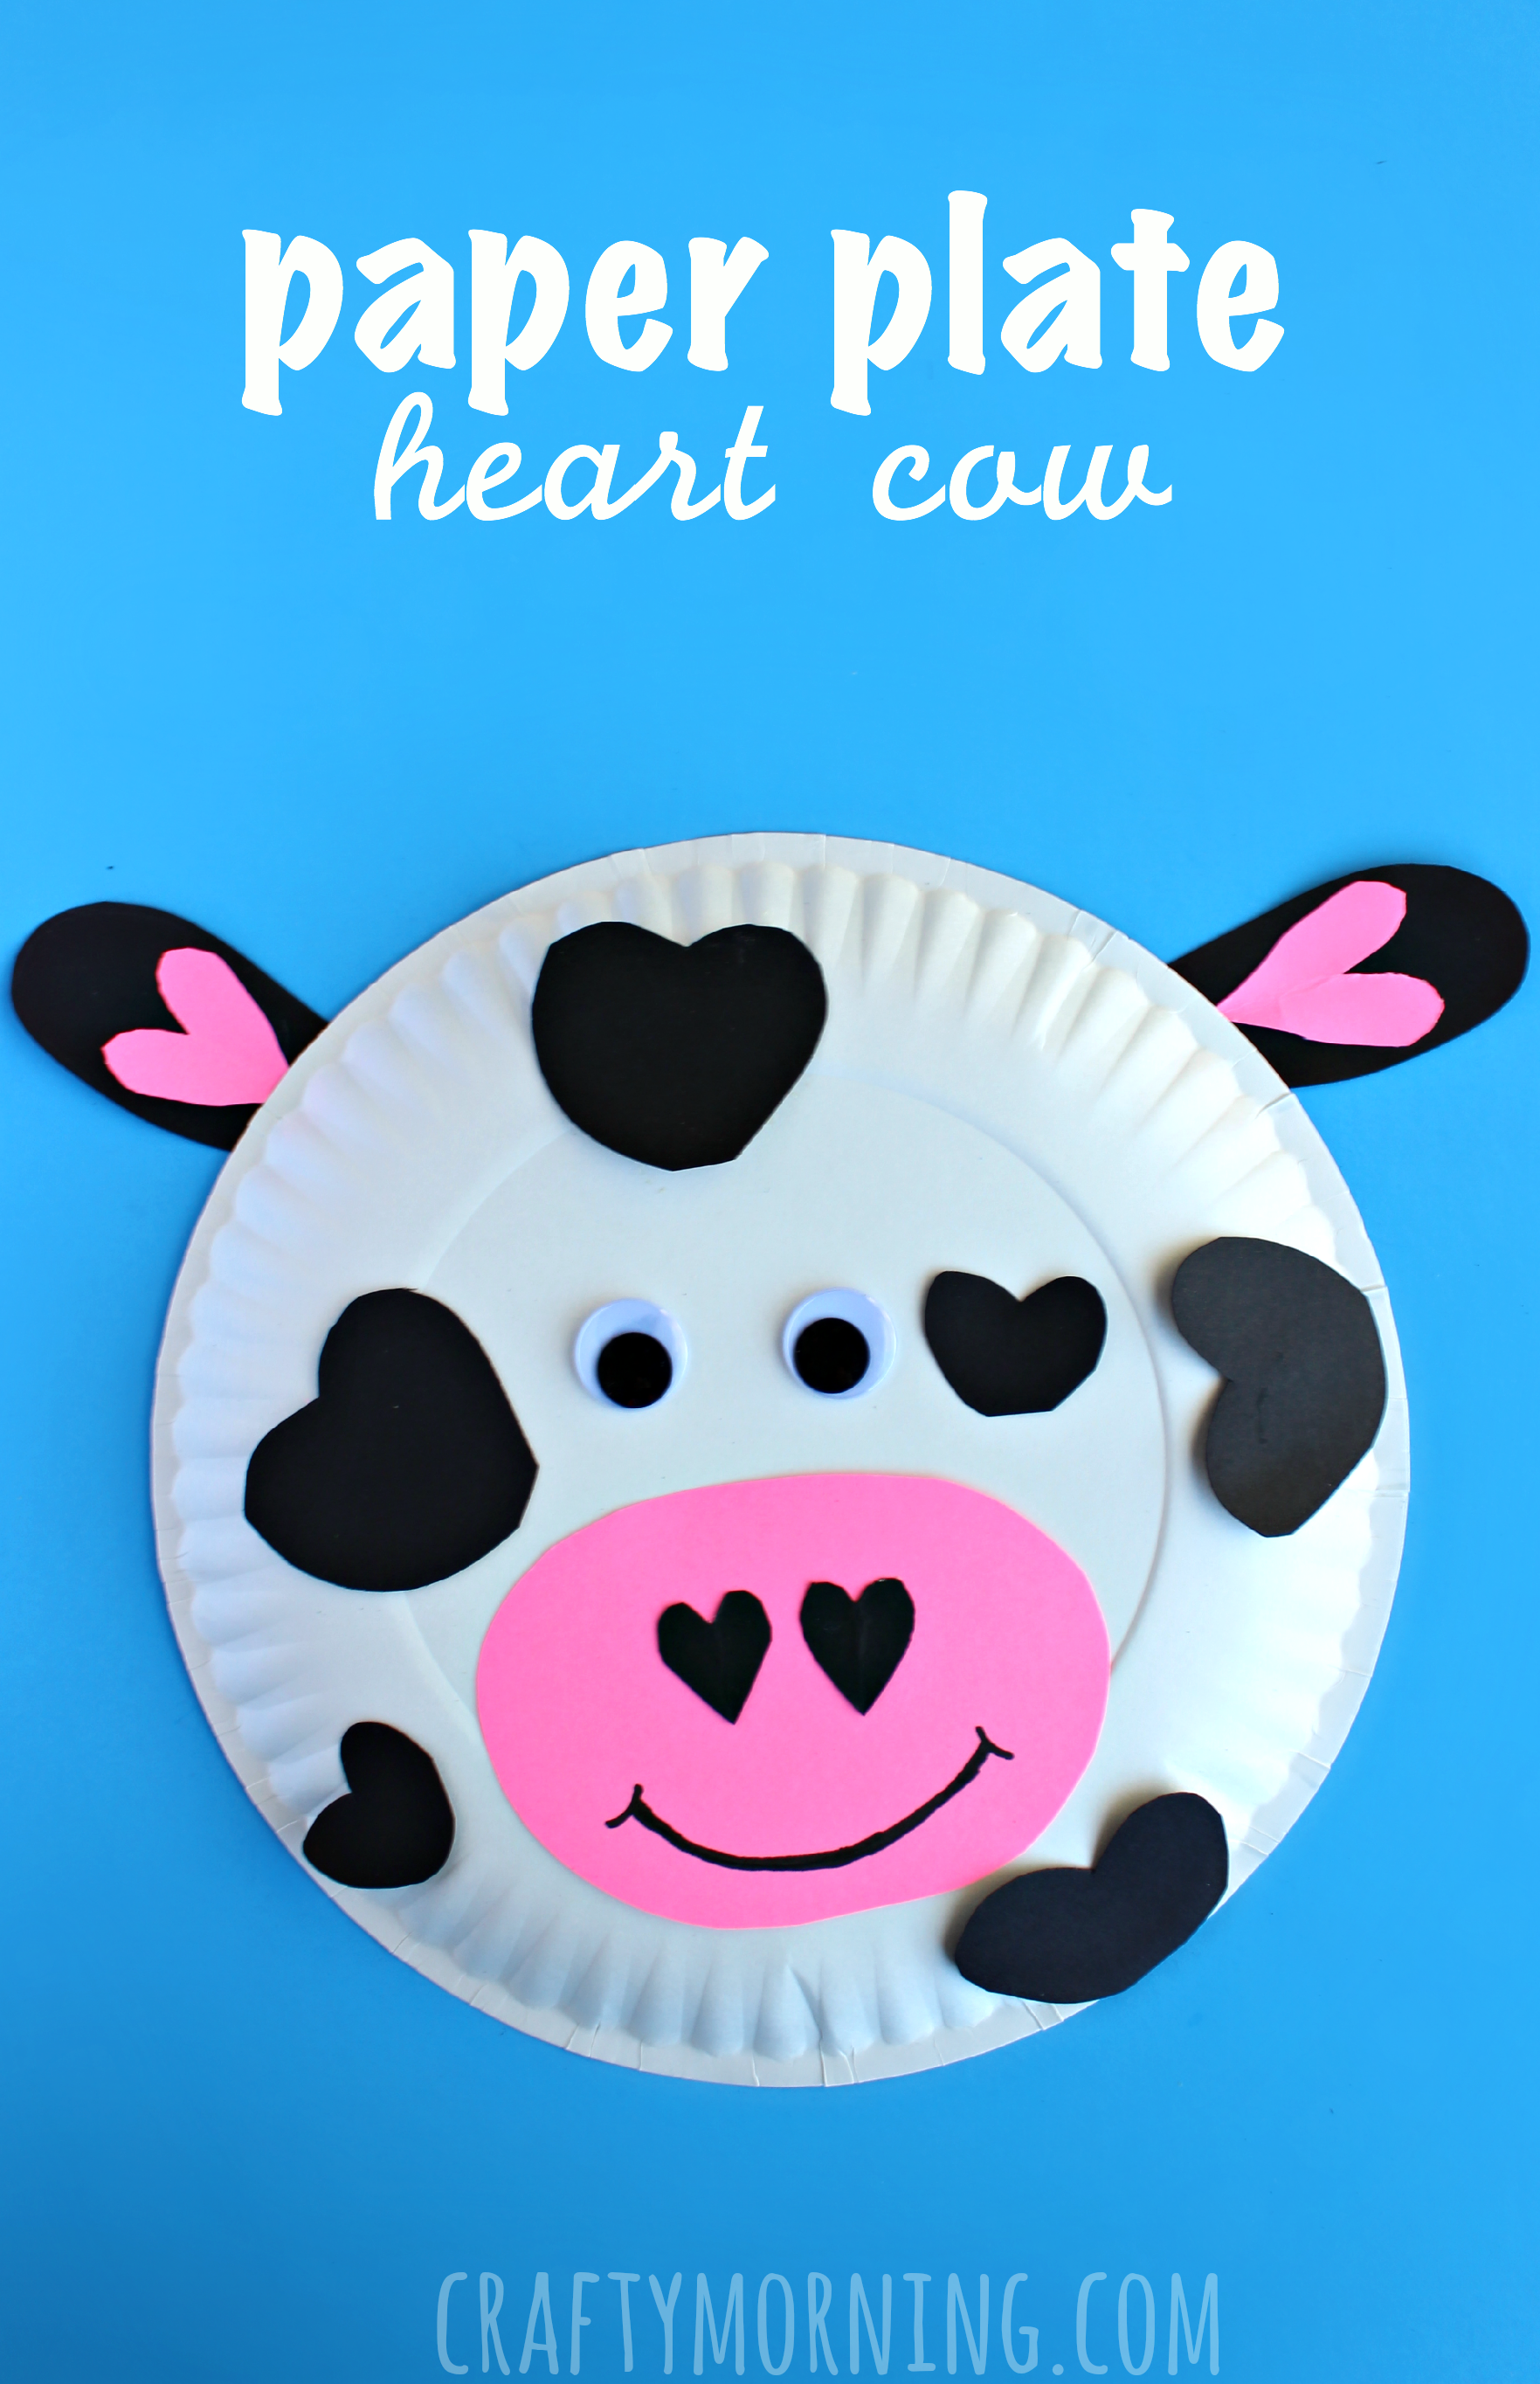 paper plate cow heart valentine craft for kids Paper Plate Cow Valentine Craft for